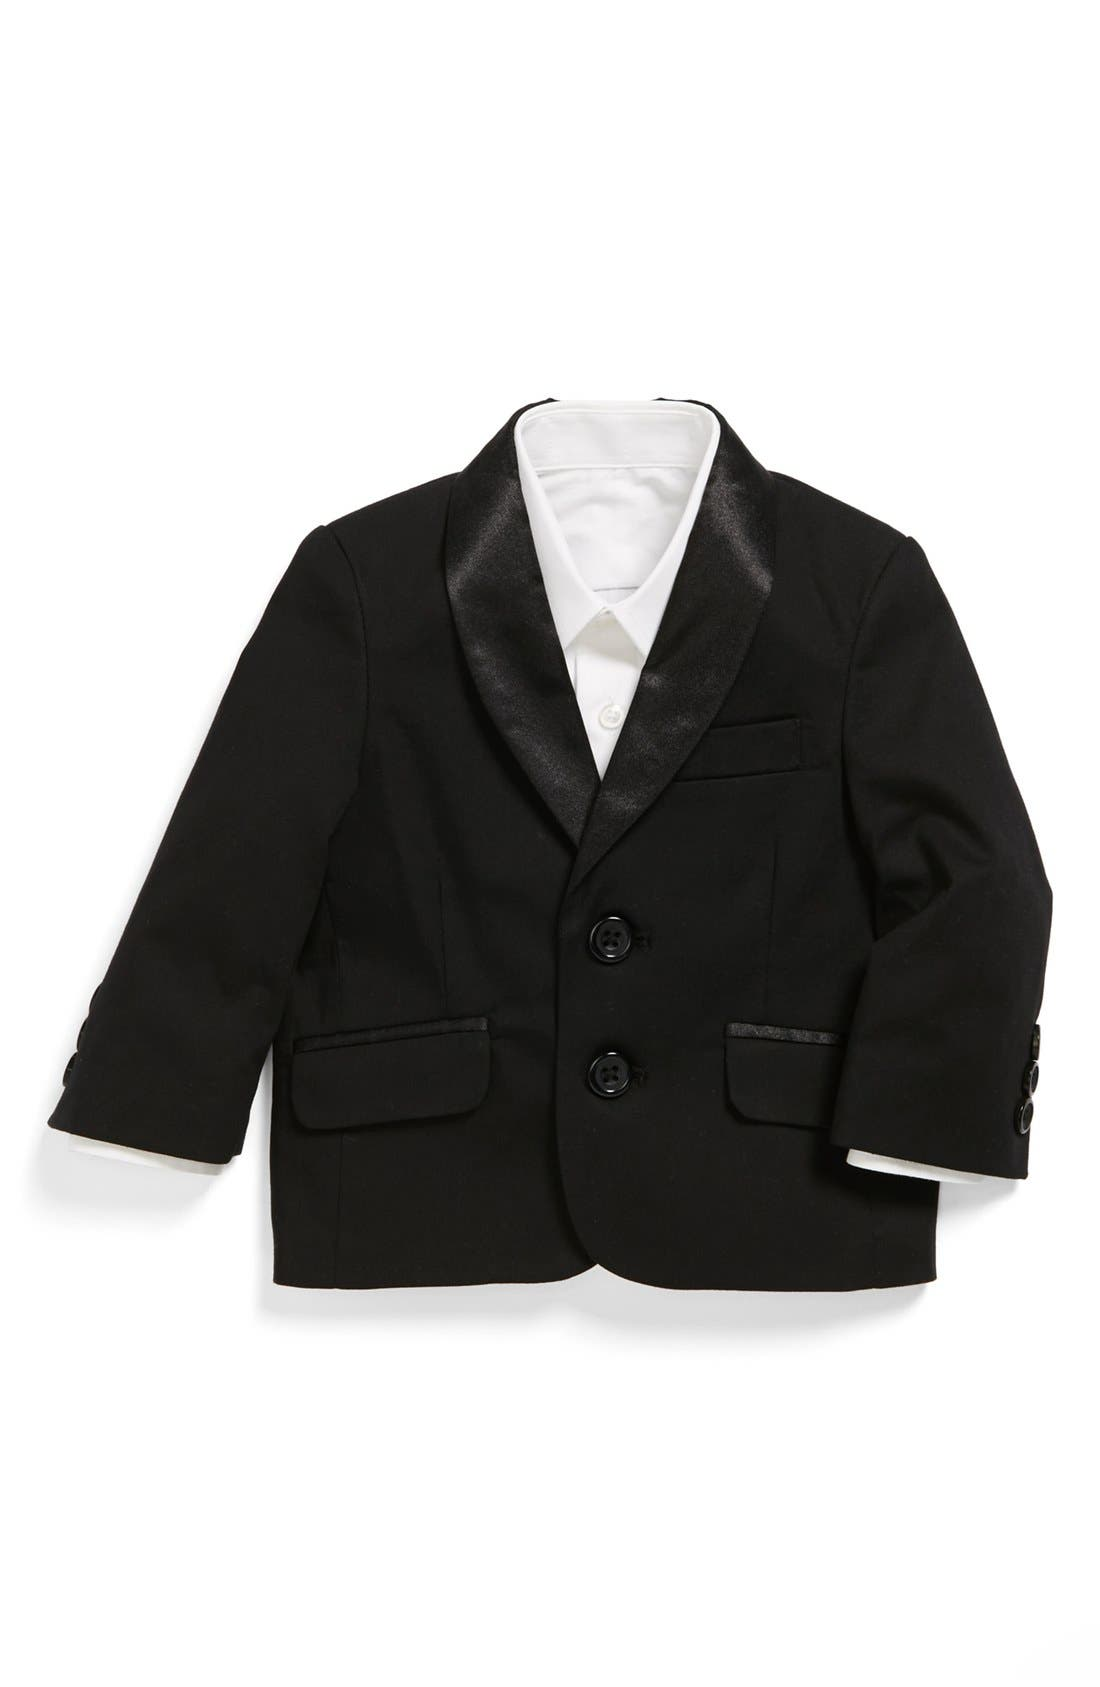 Main Image - C2 by Calibrate 'Holiday' Dinner Jacket (Toddler Boys)